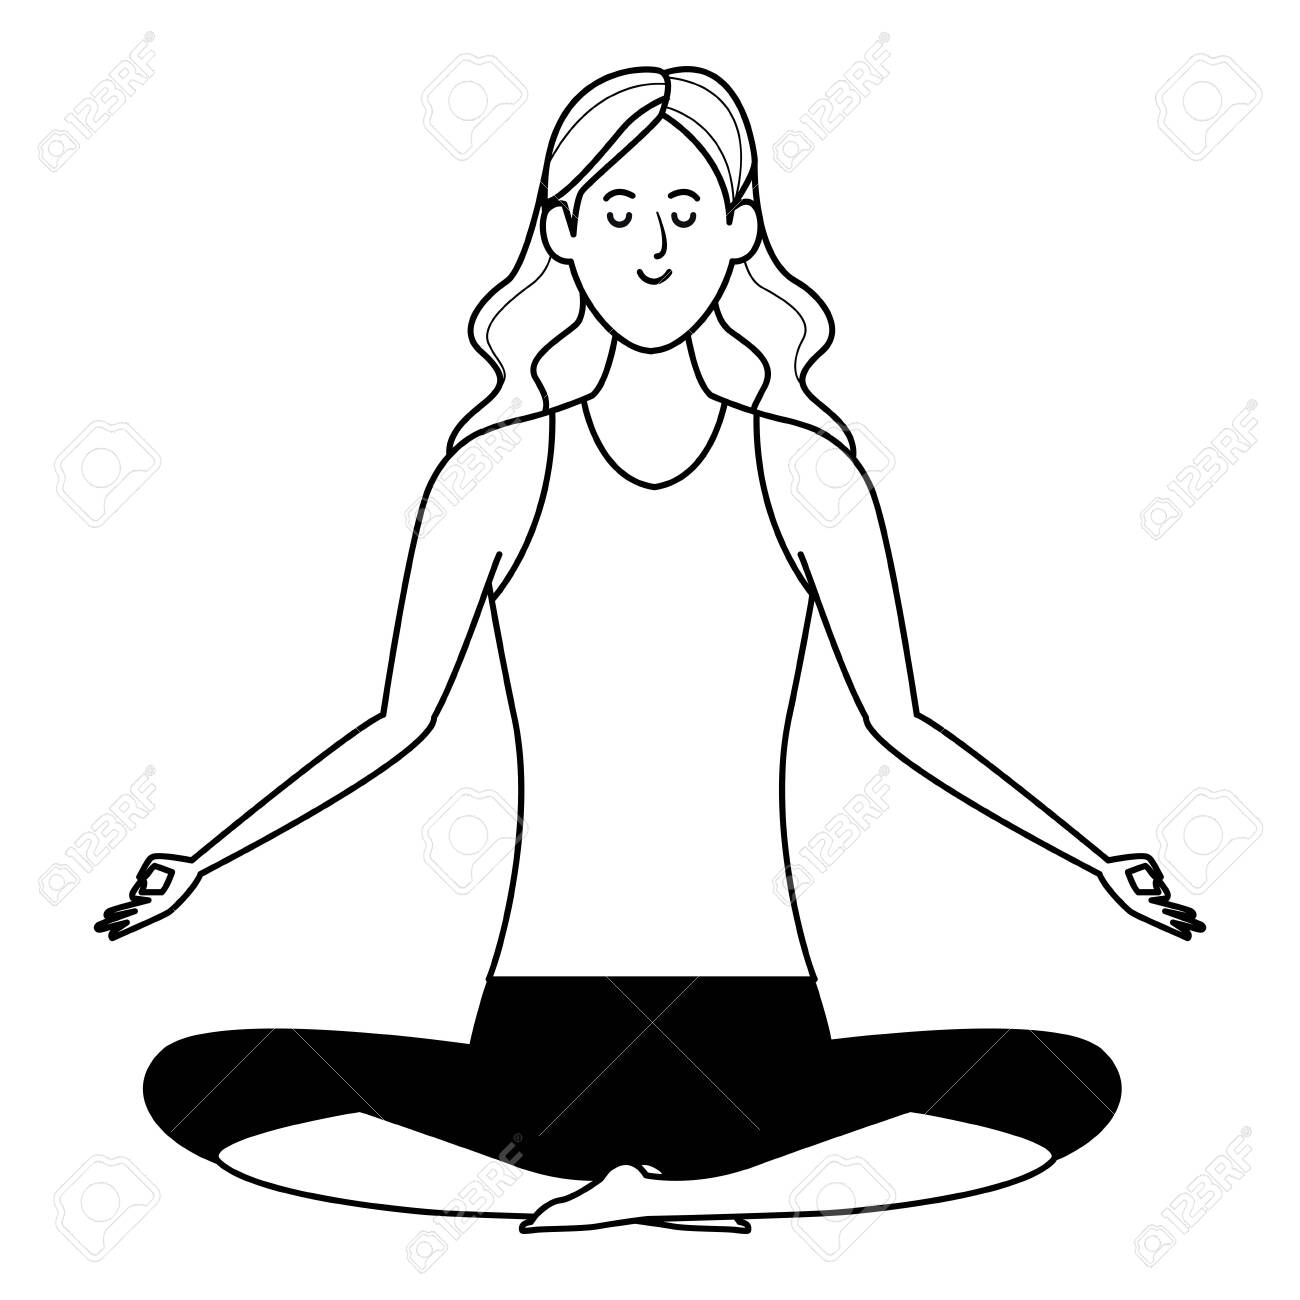 Woman Yoga Pose Avatar Cartoon Character Black And White Vector Royalty Free Cliparts Vectors And Stock Illustration Image 124135136